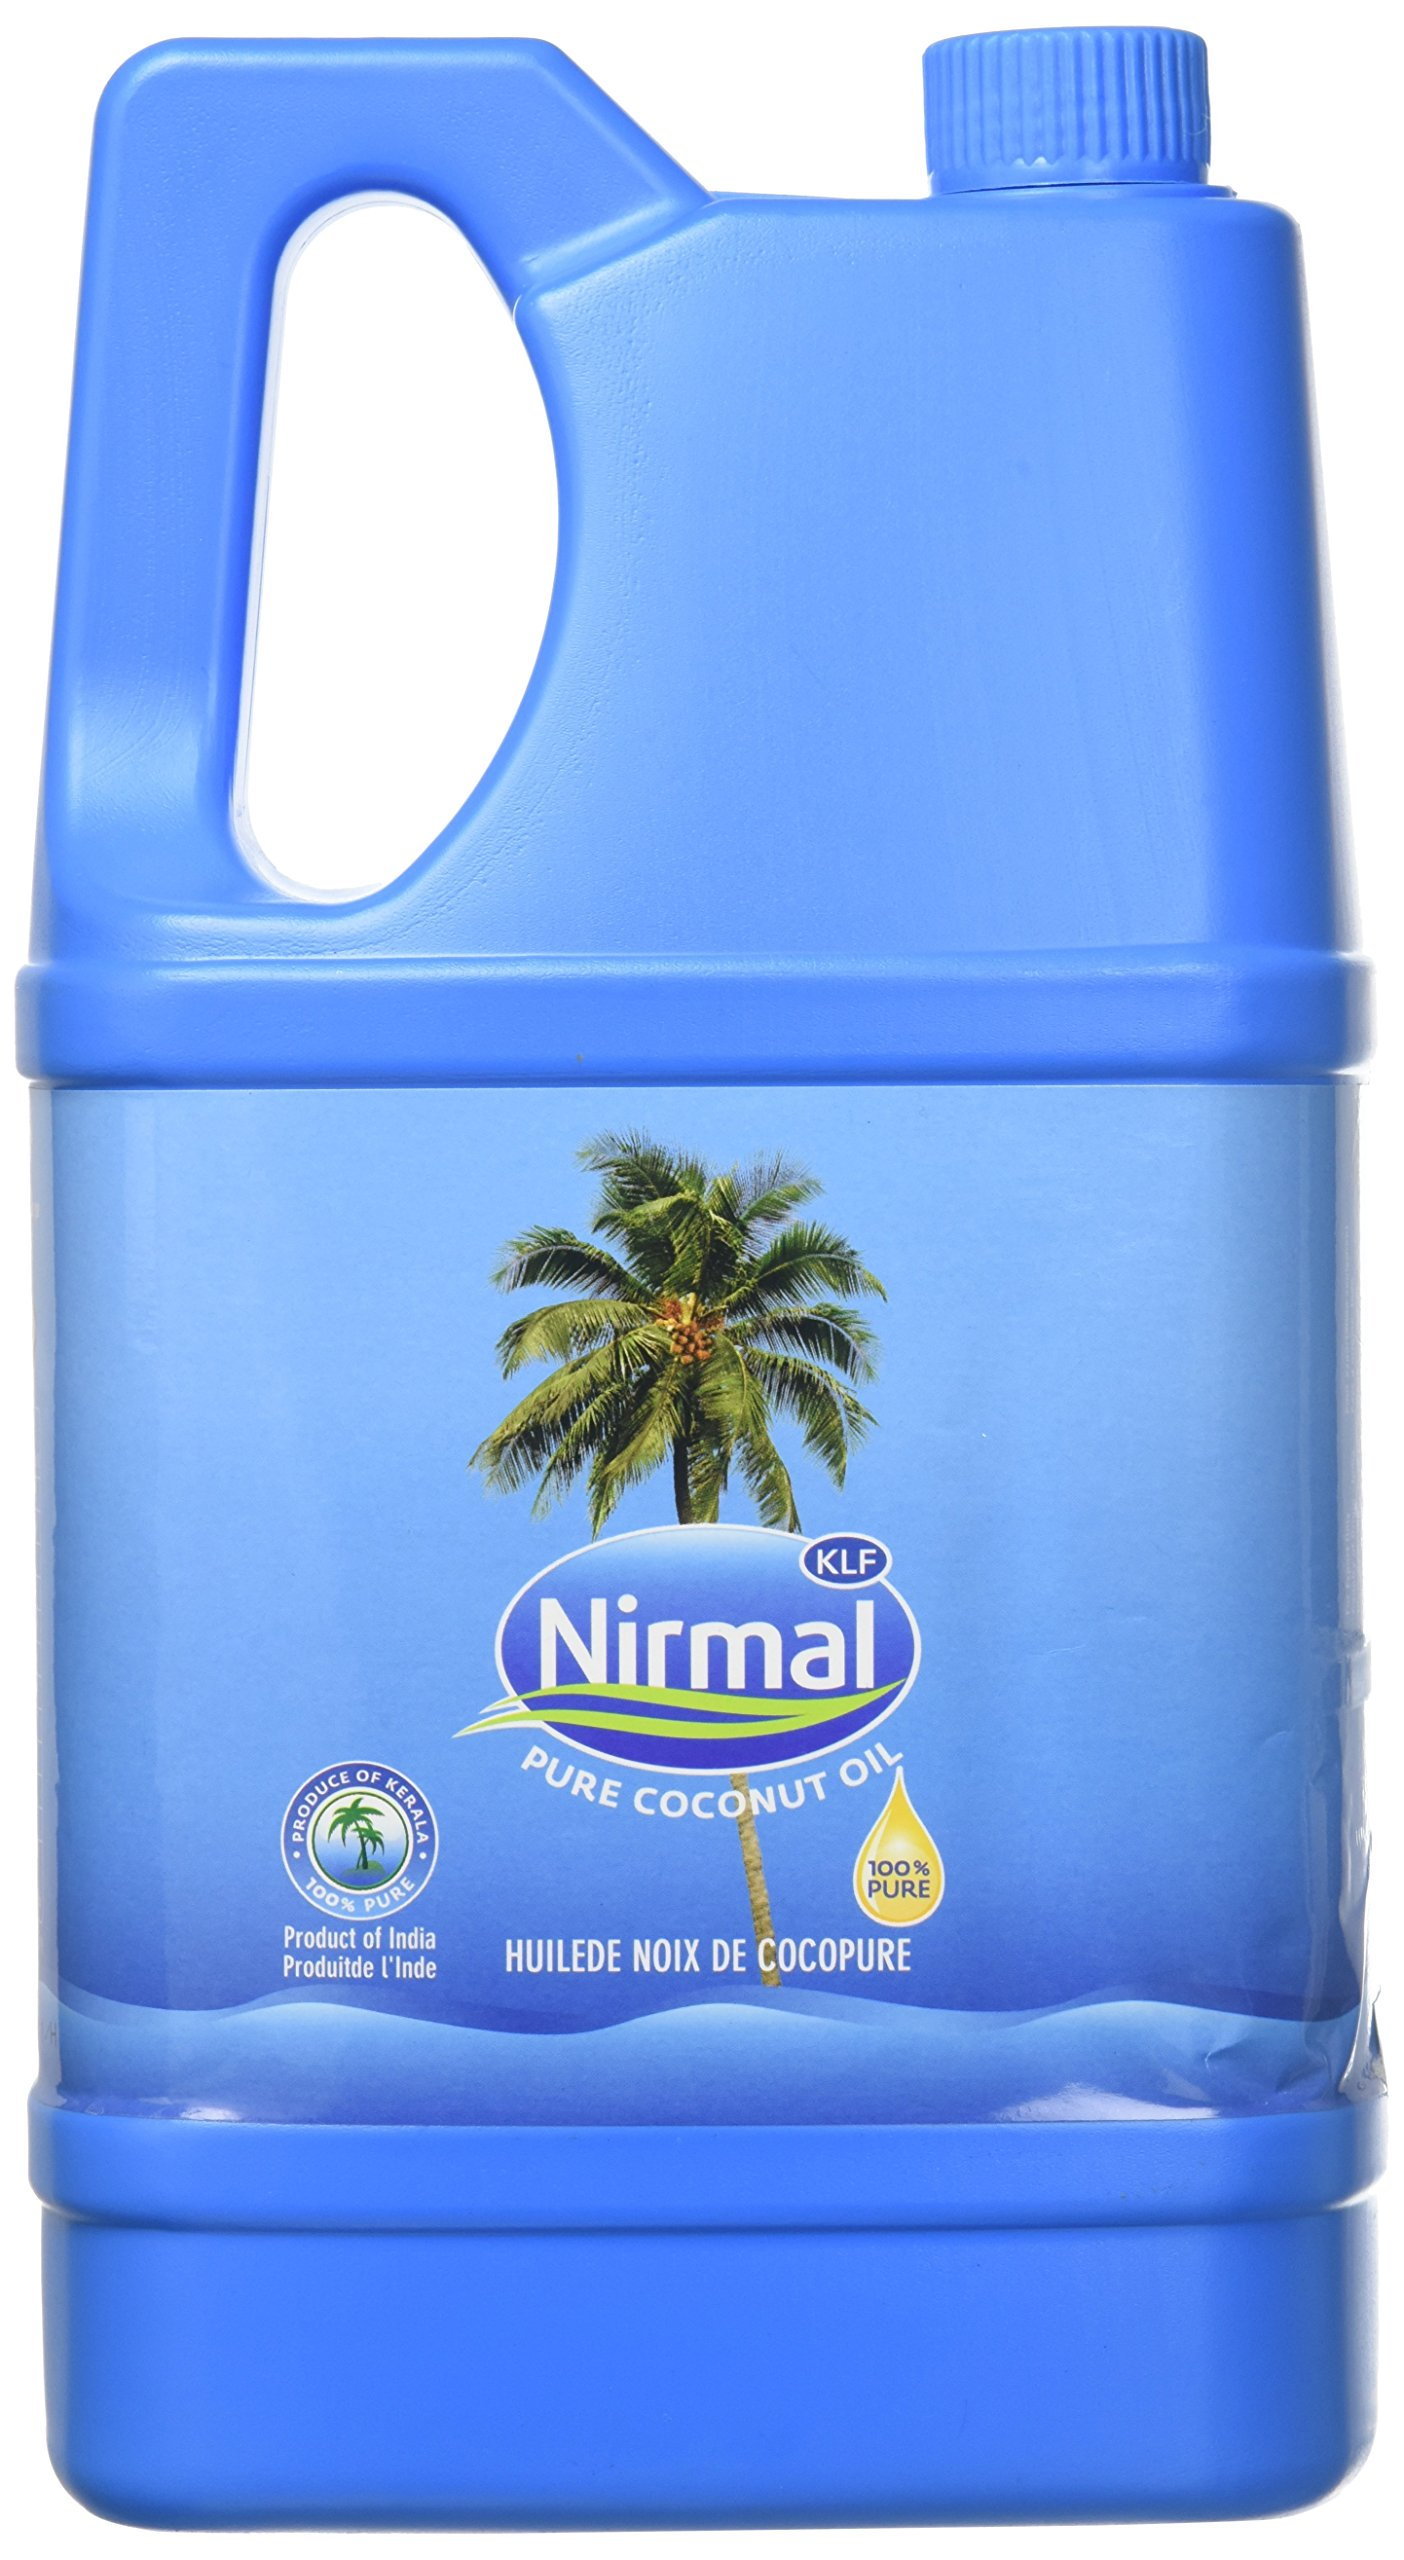 Nirmal, Pure Coconut Oil, 2 Liter(ltr) by Nirmal